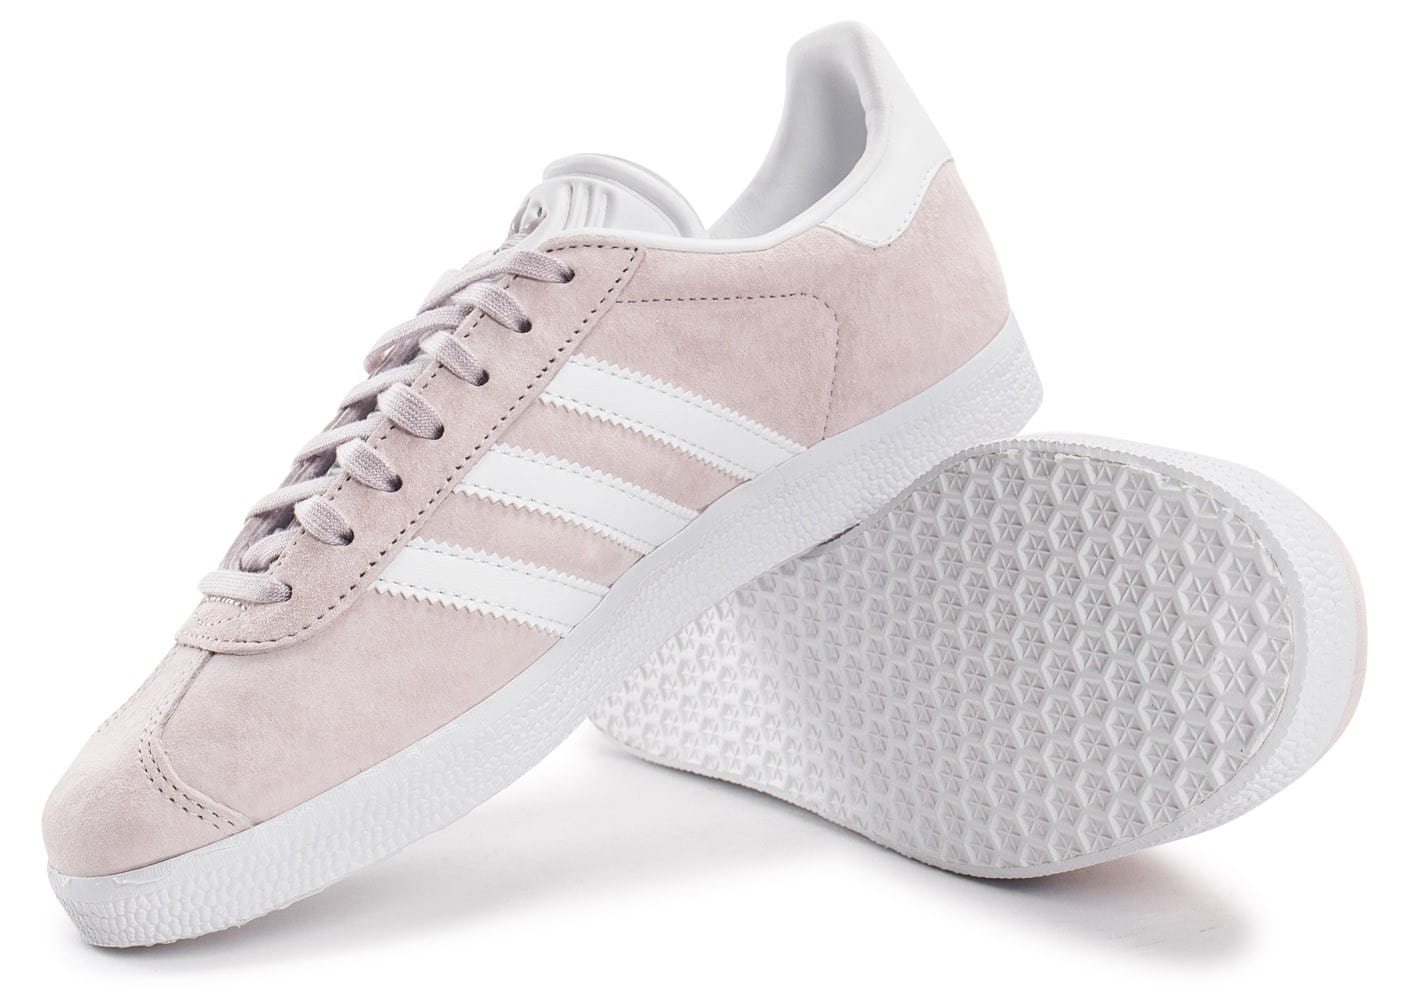 Gazelle Chausport Rose Qwfhzrwthesis W Old Adidas Chaussures H9ED2I